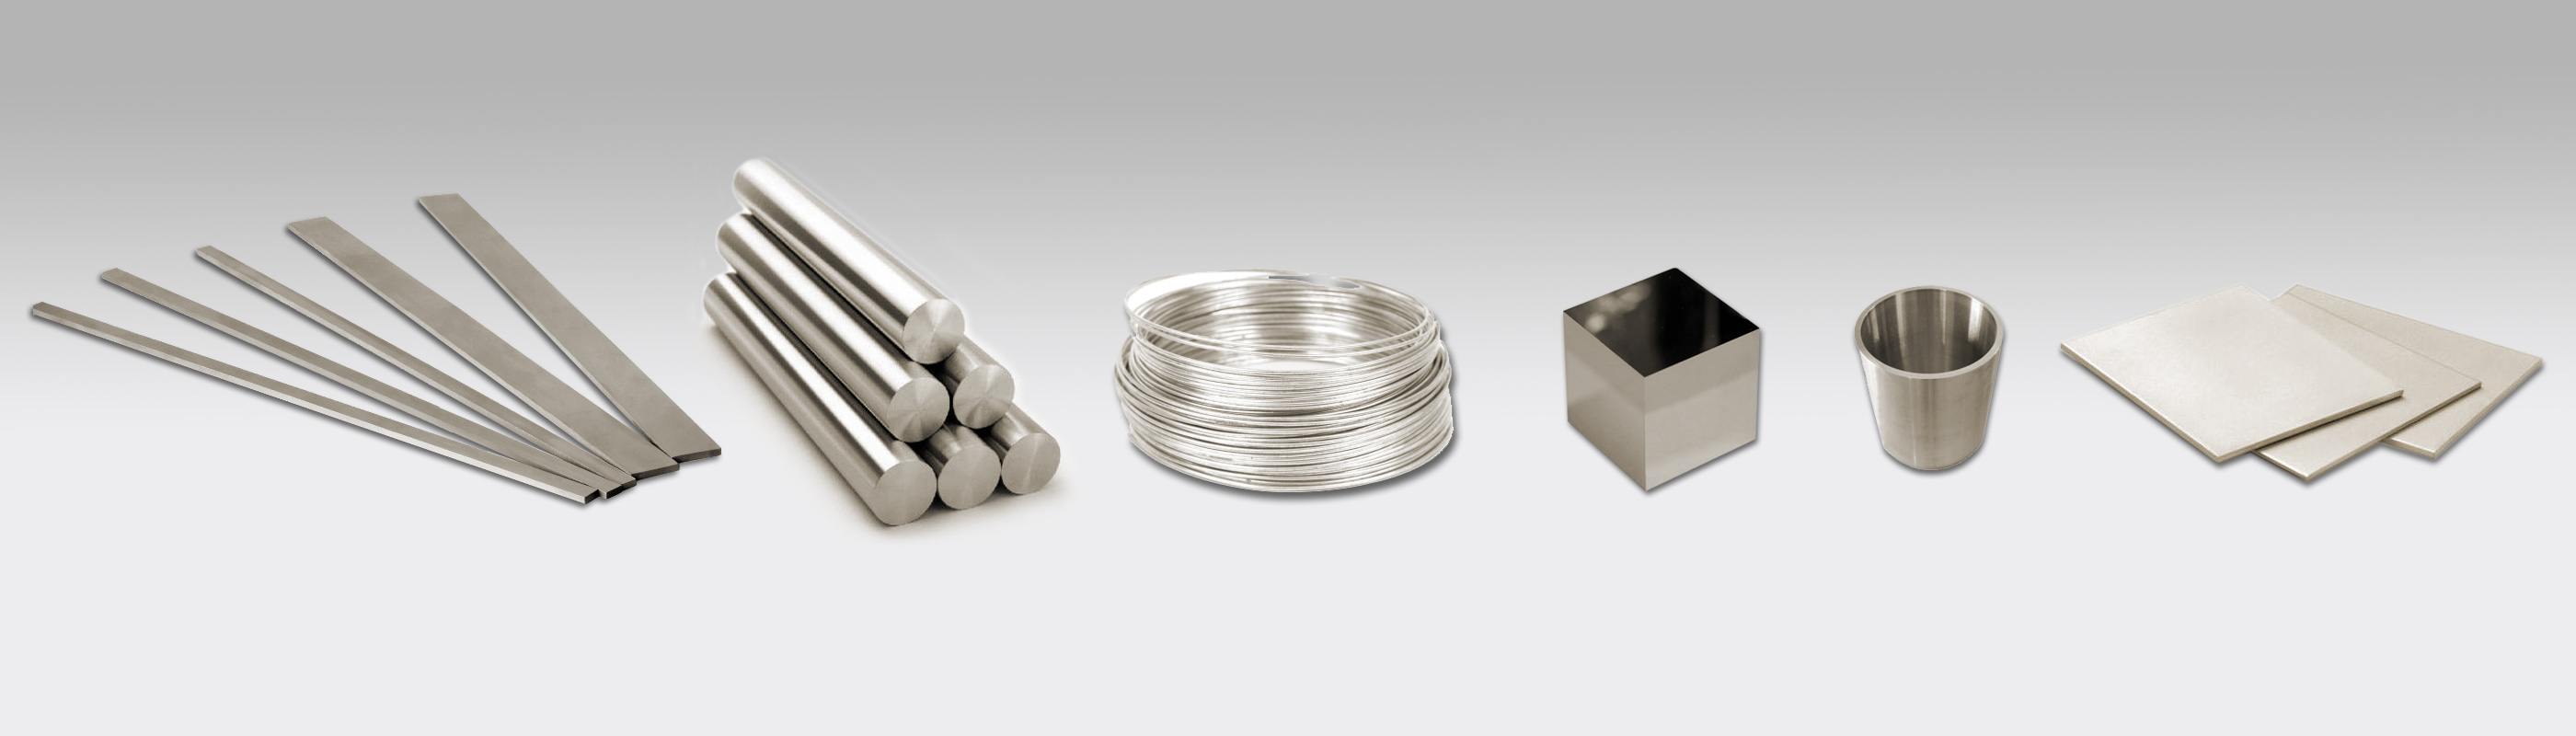 Future Alloys Special Metals UK Supplier